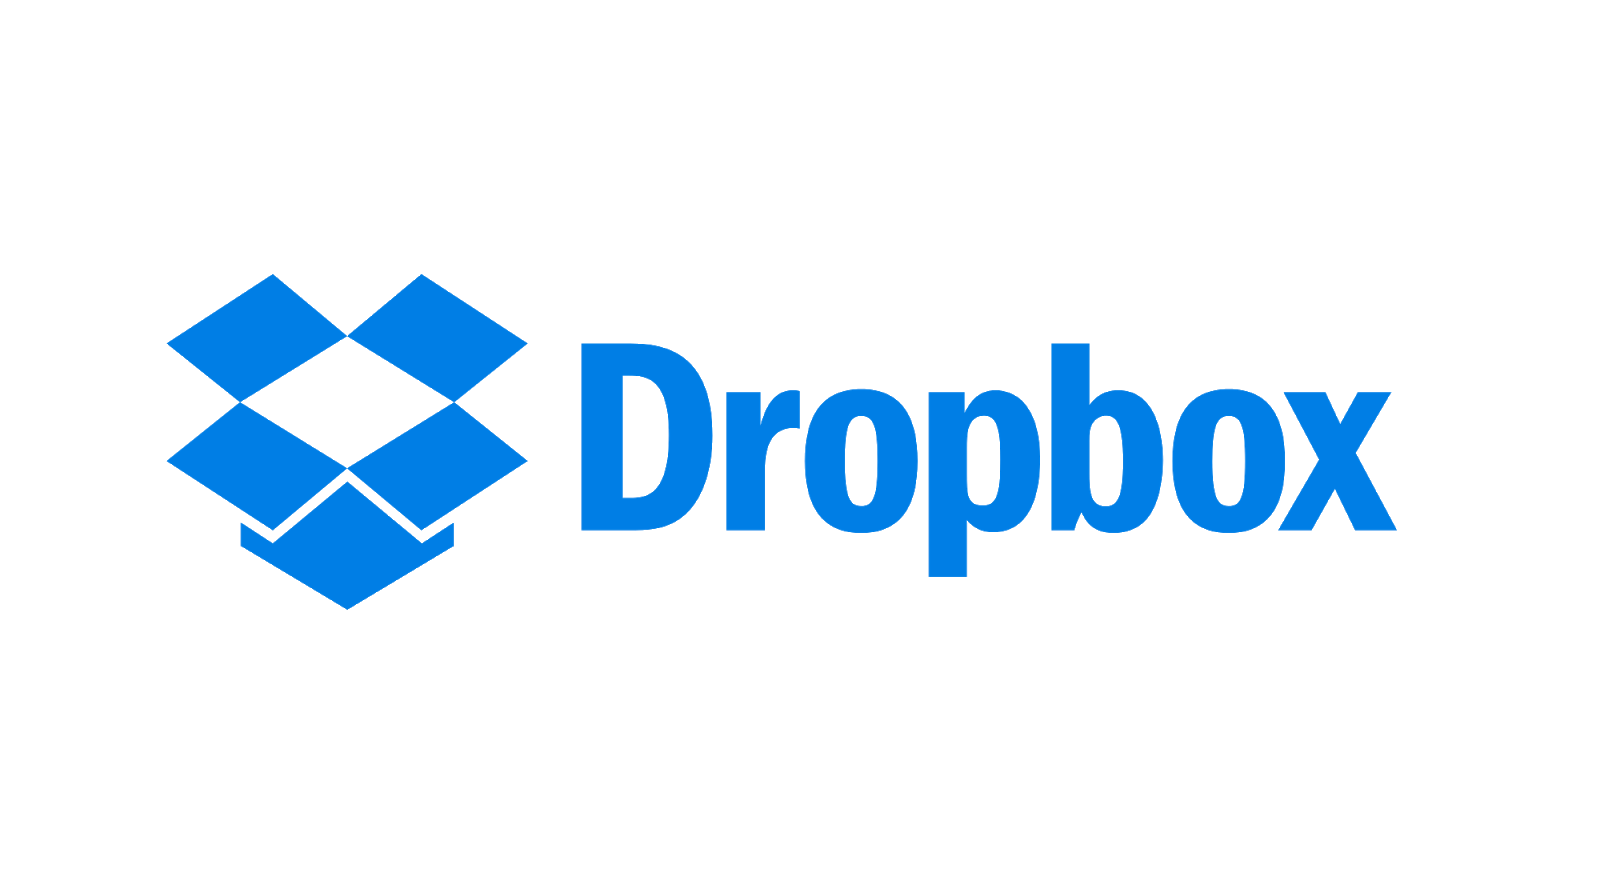 what make Dropbox so popular